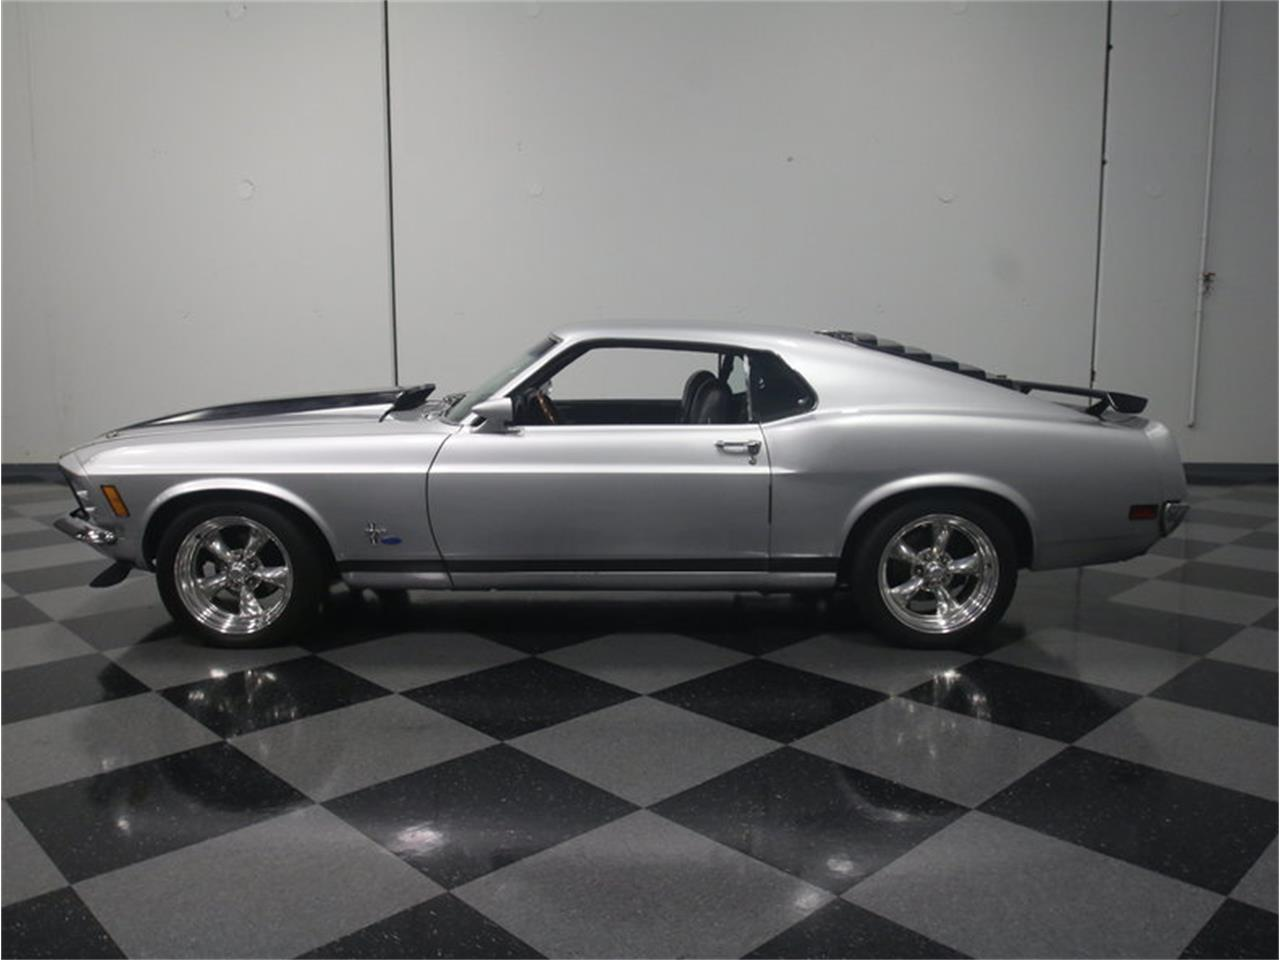 Large picture of 70 mustang fastback restomod l6i5